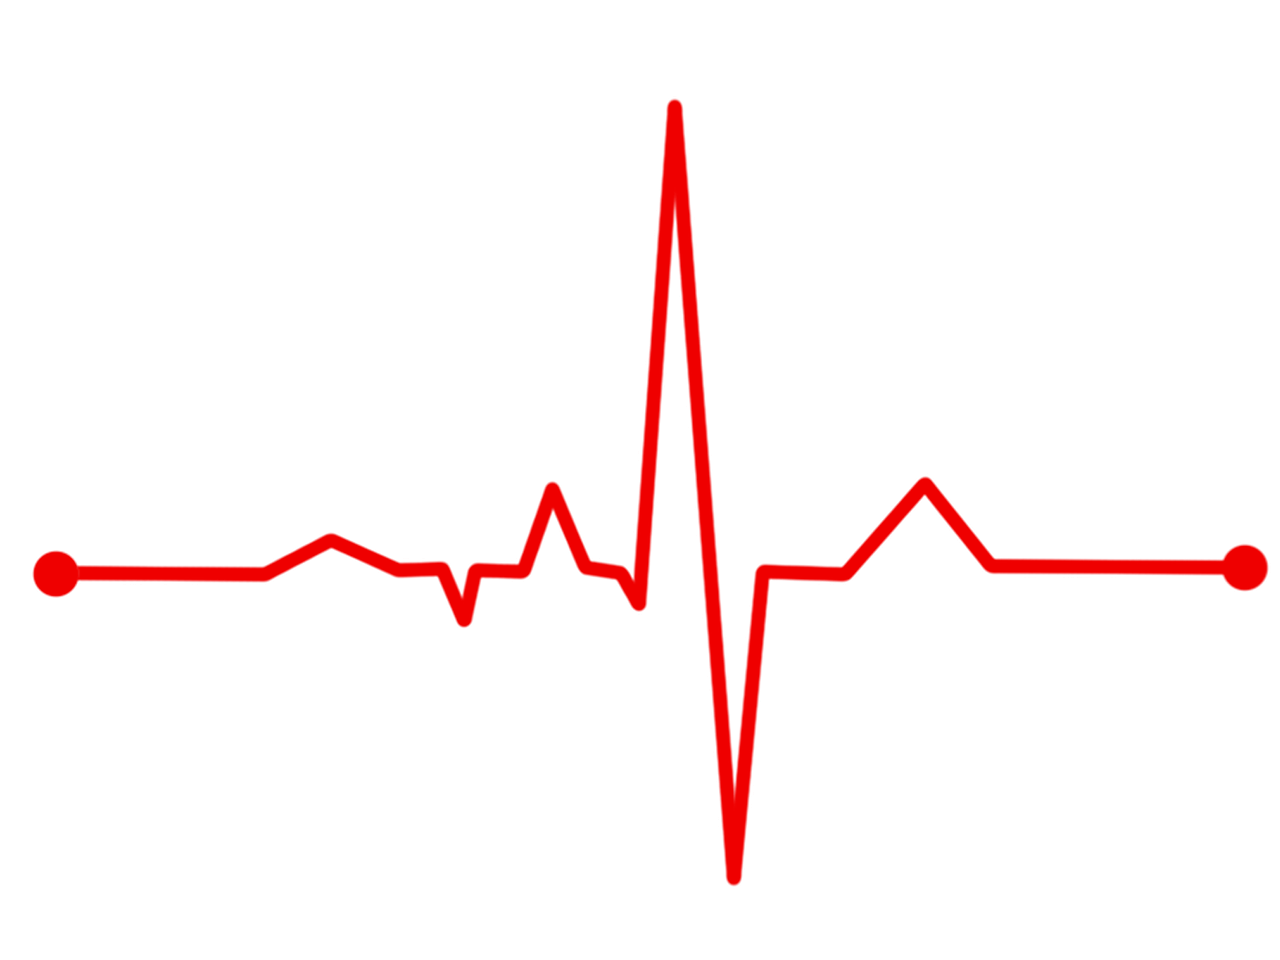 Significantly higher rates of mortality due to heart disease and cancer among Holocaust survivors